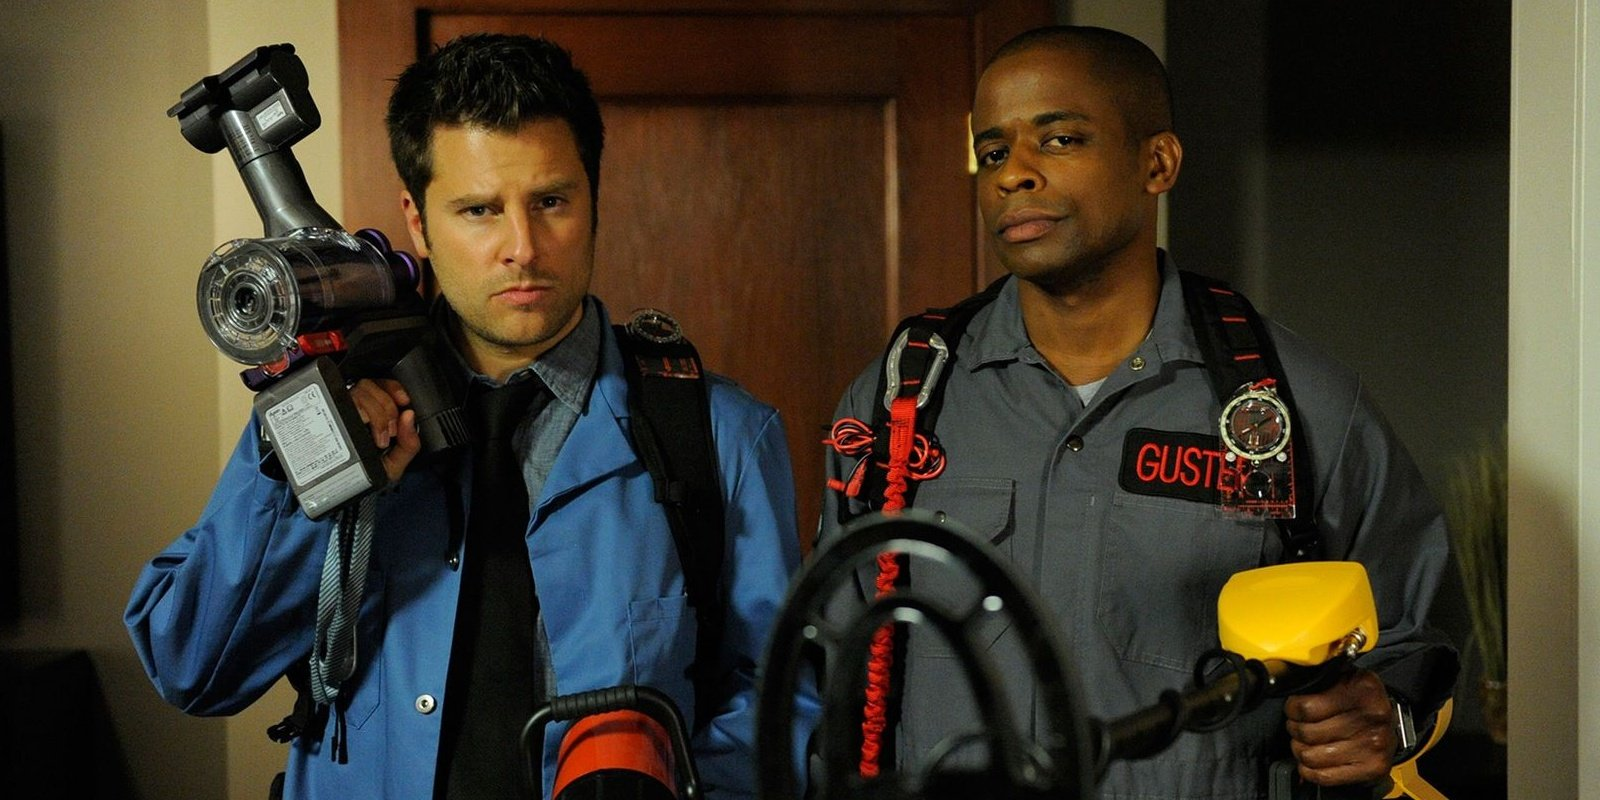 Best friends Shawn and Gus as Ghostbusters (Psych).